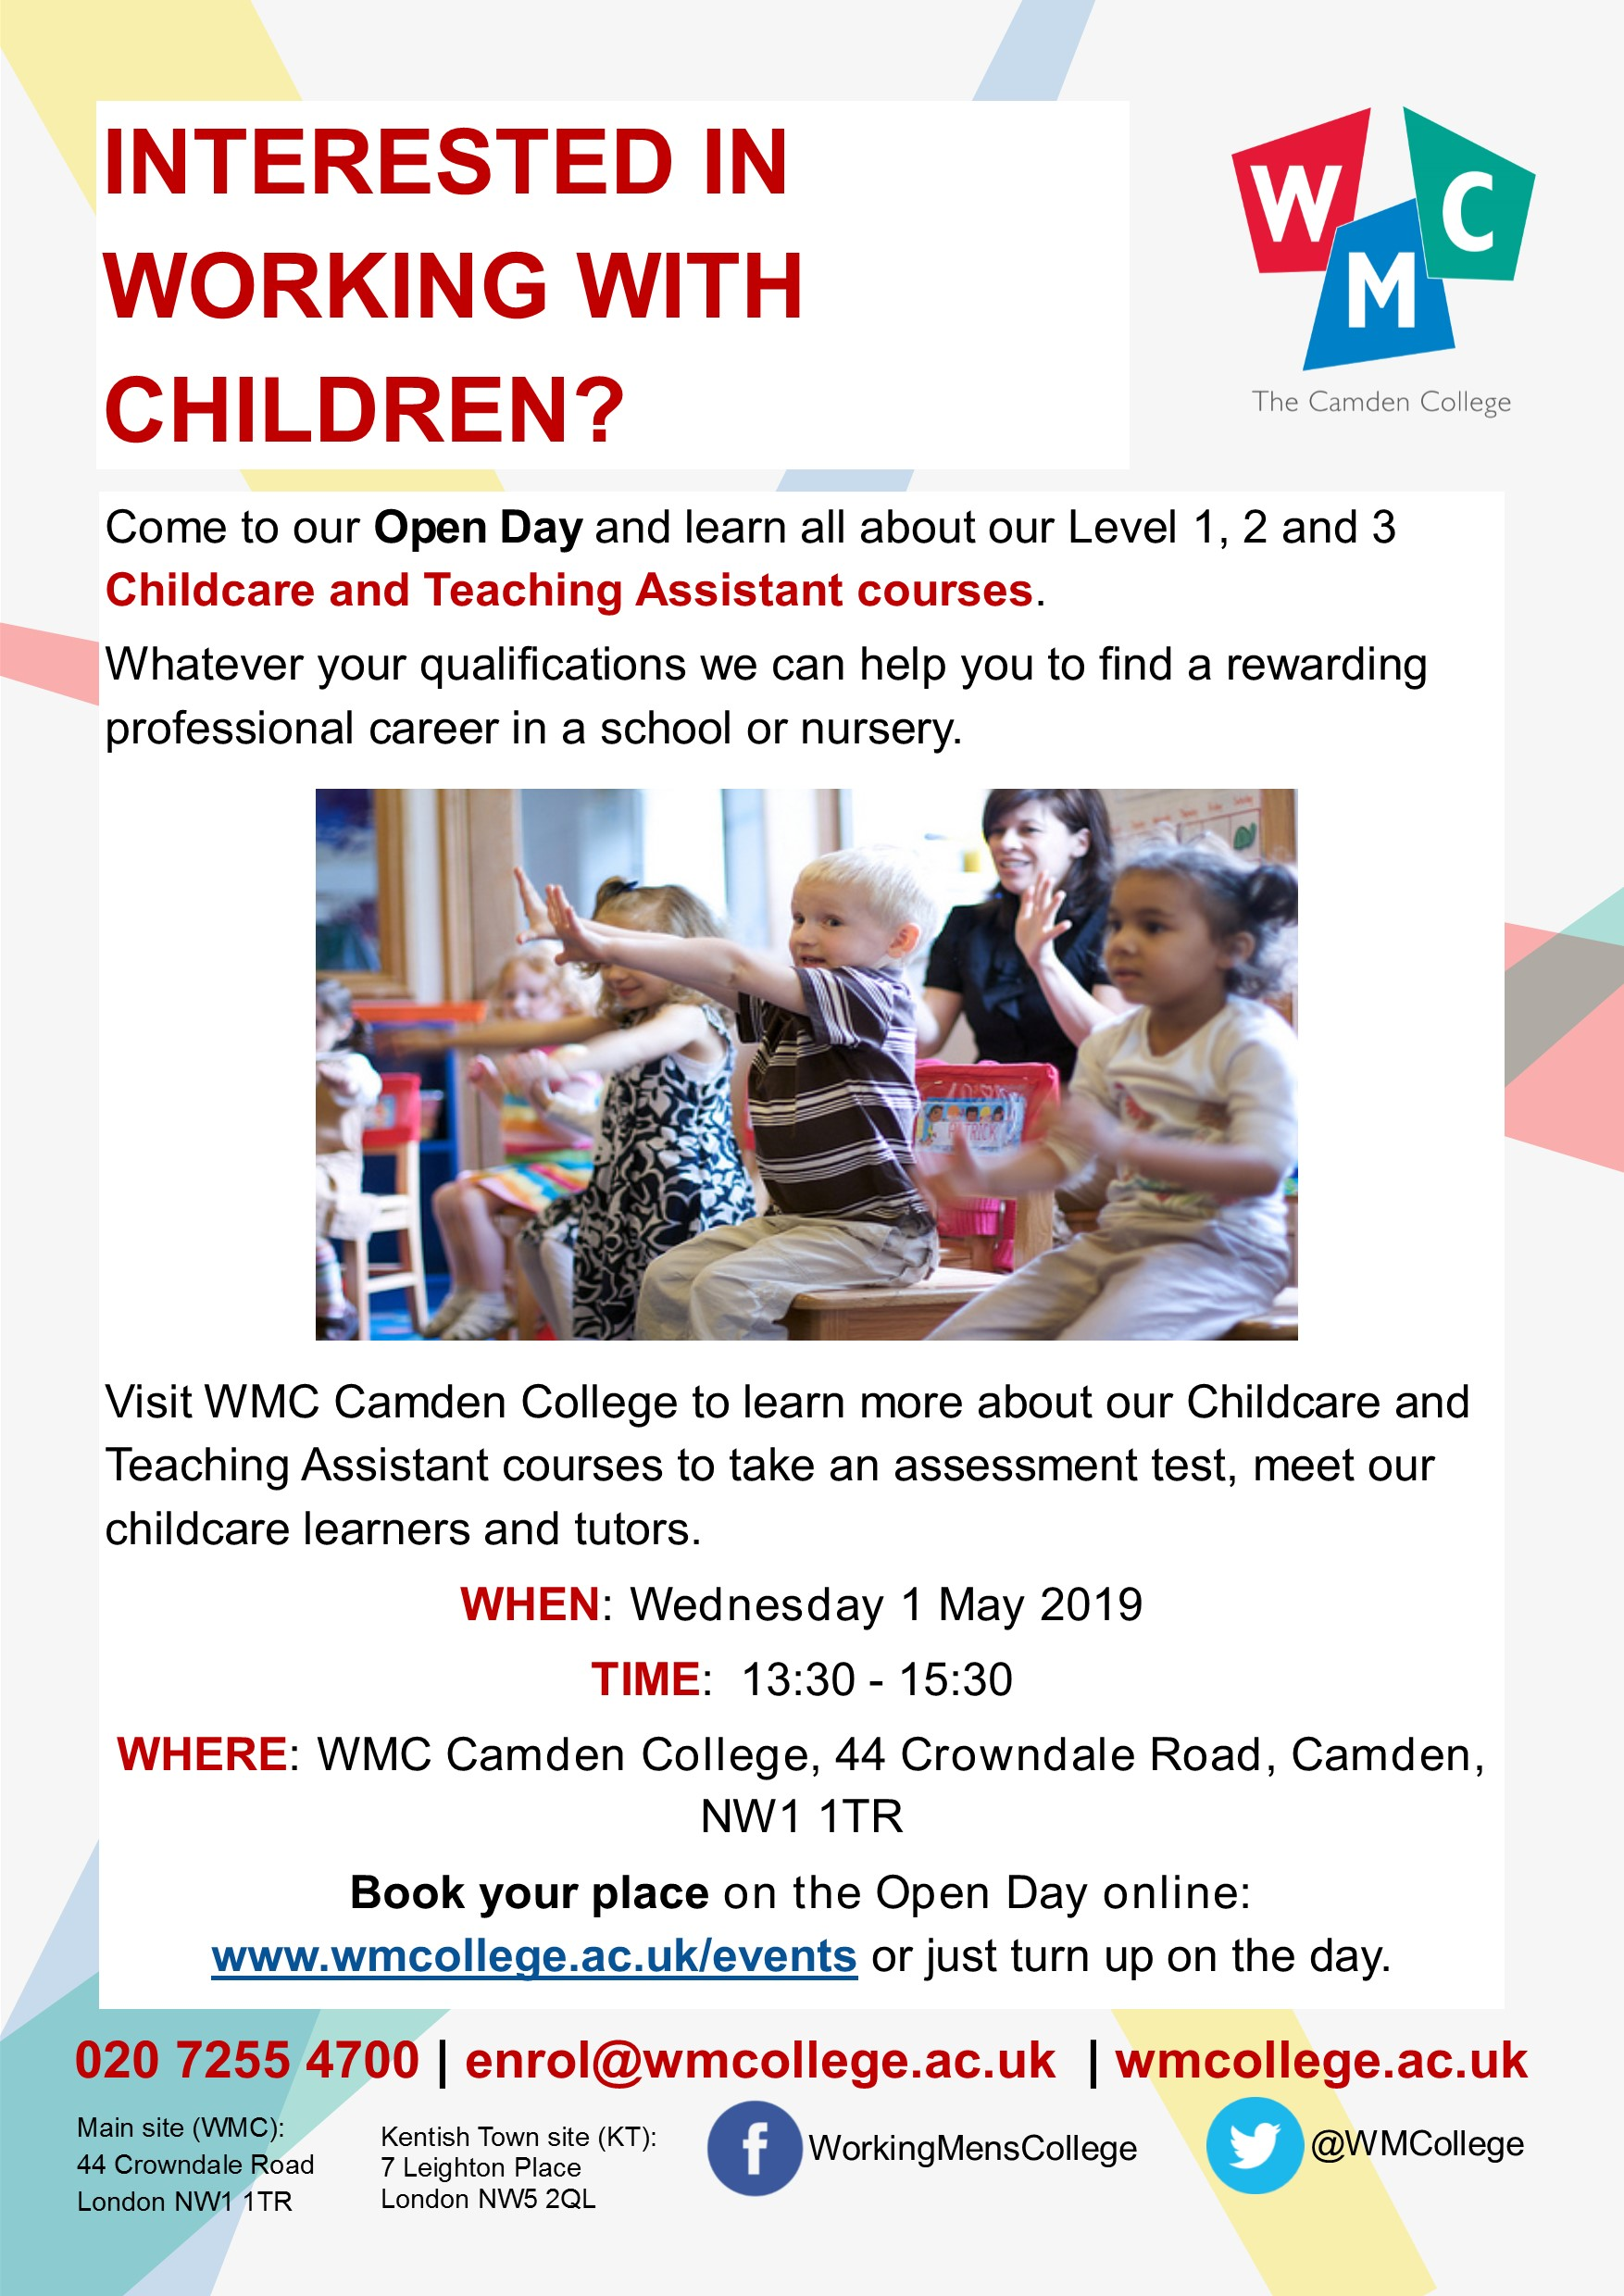 Childcare Open Day 1 May at WMC Camden College